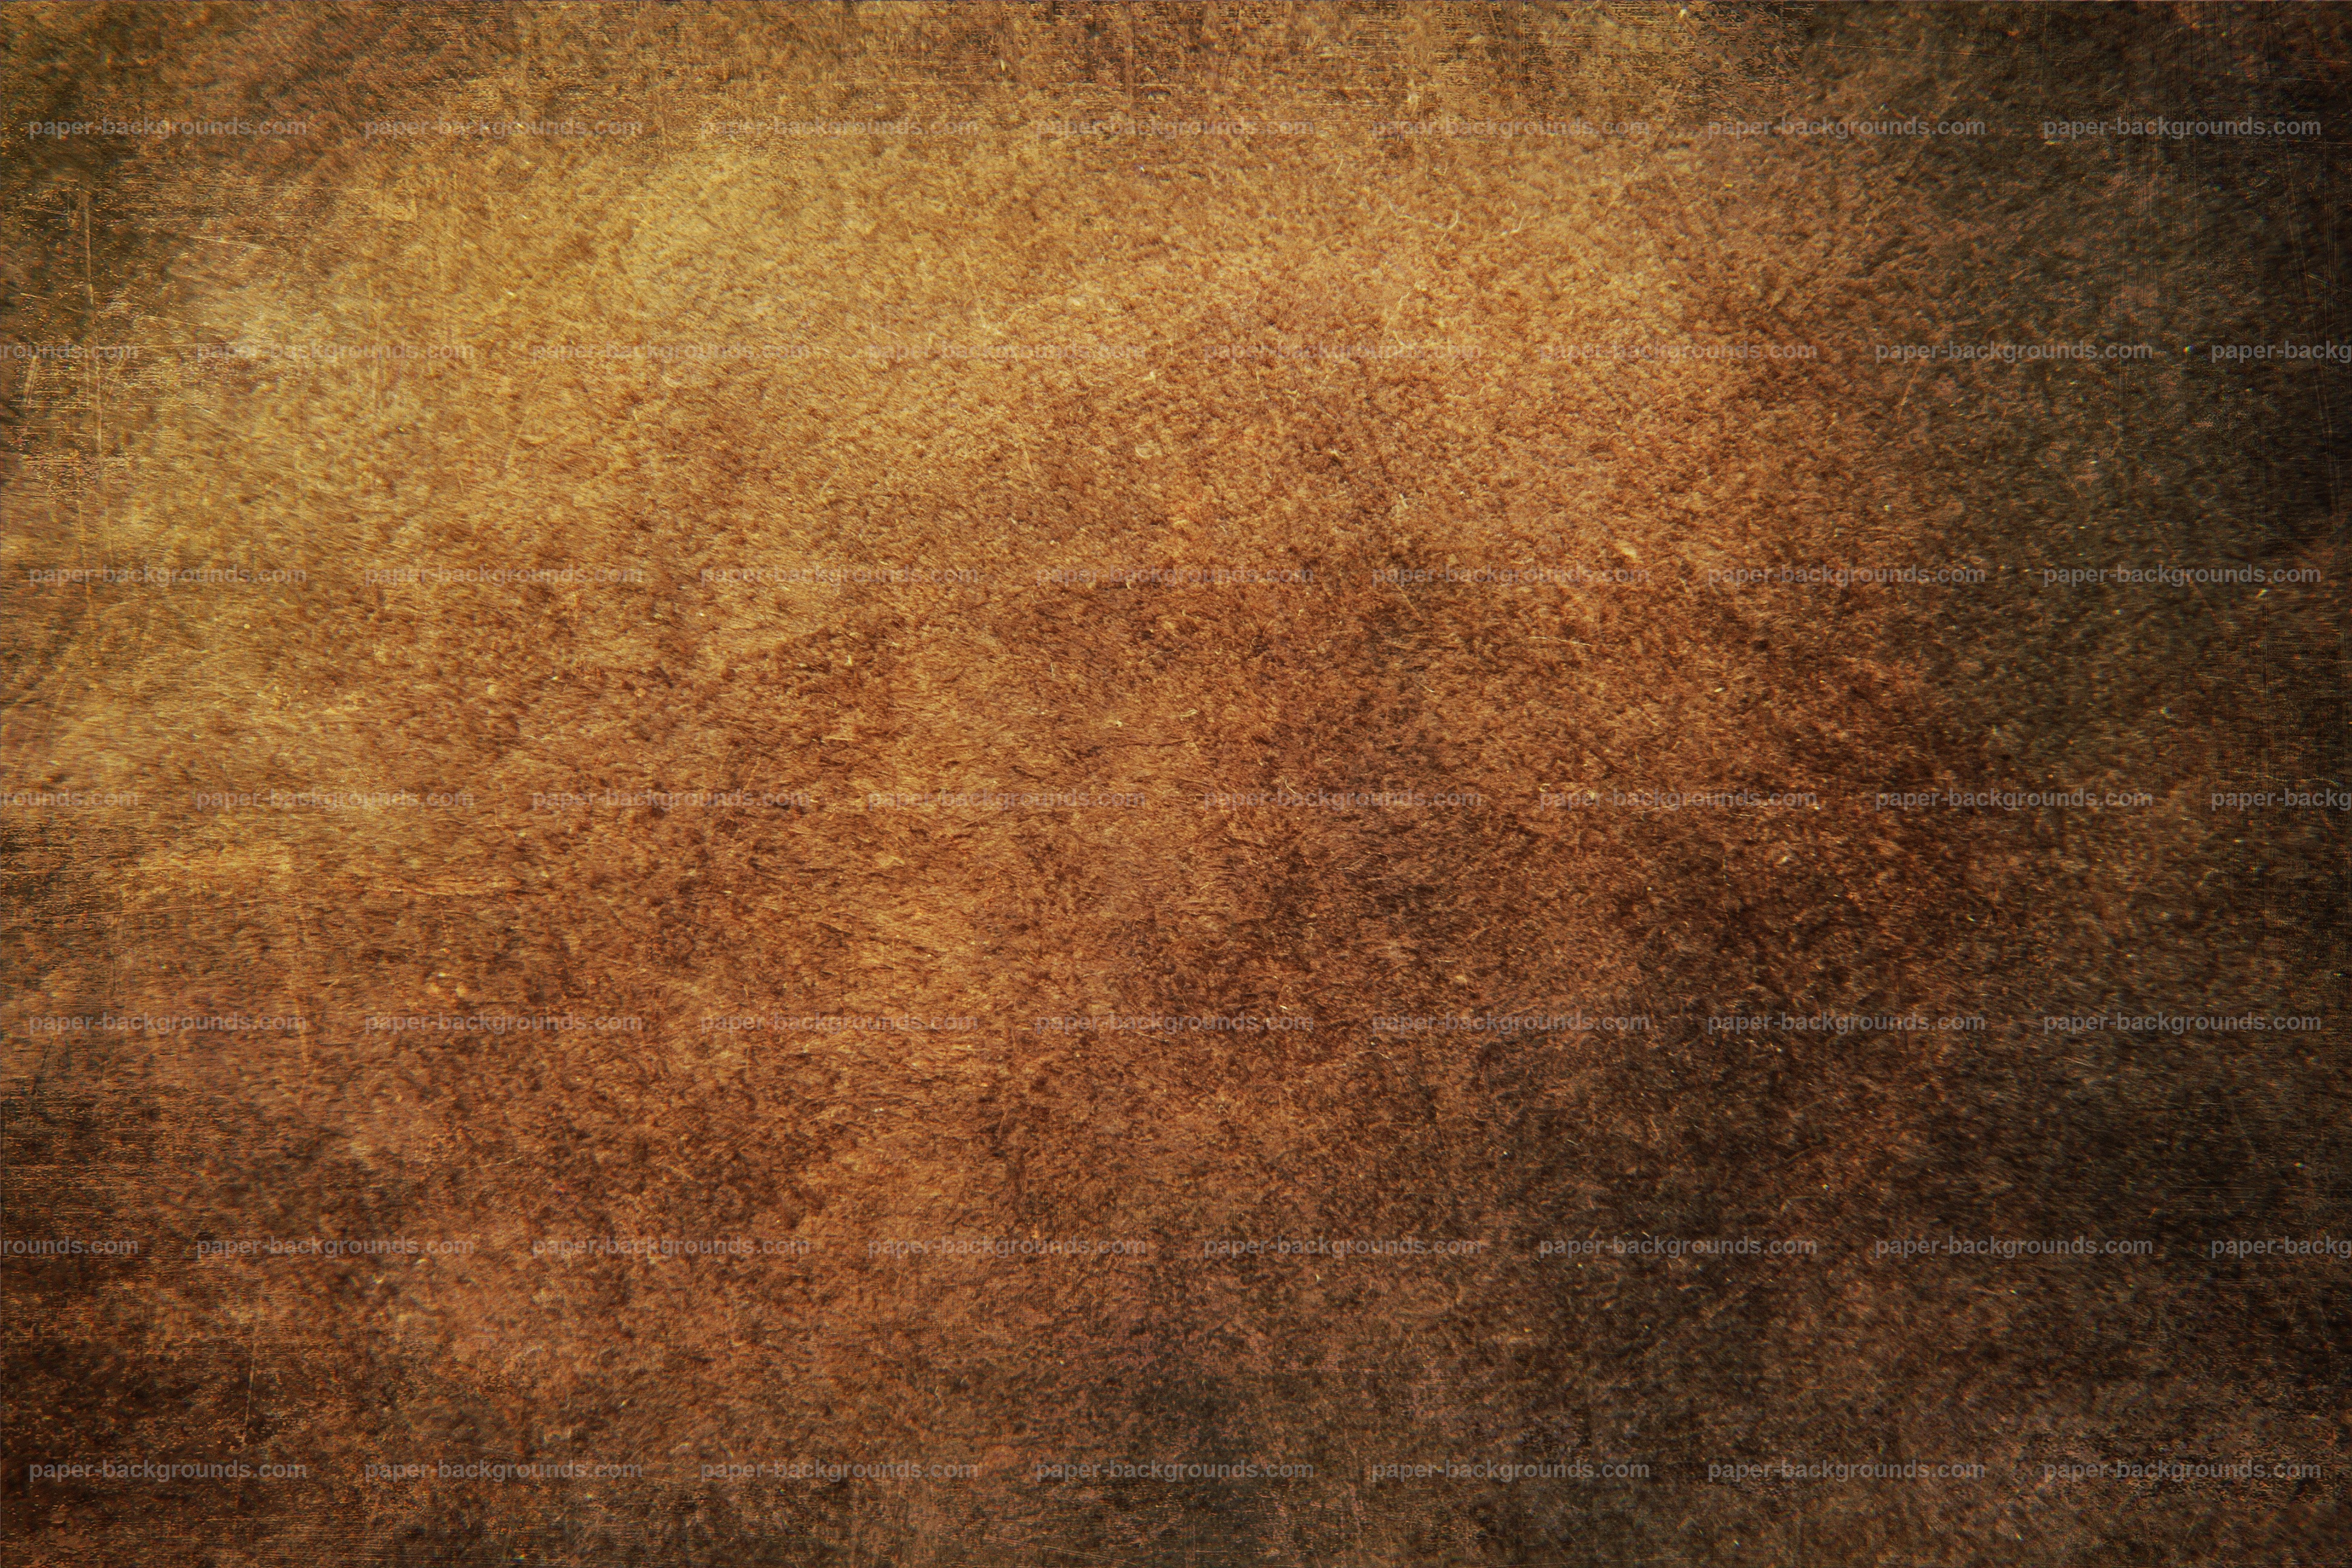 Ppt Free Textures